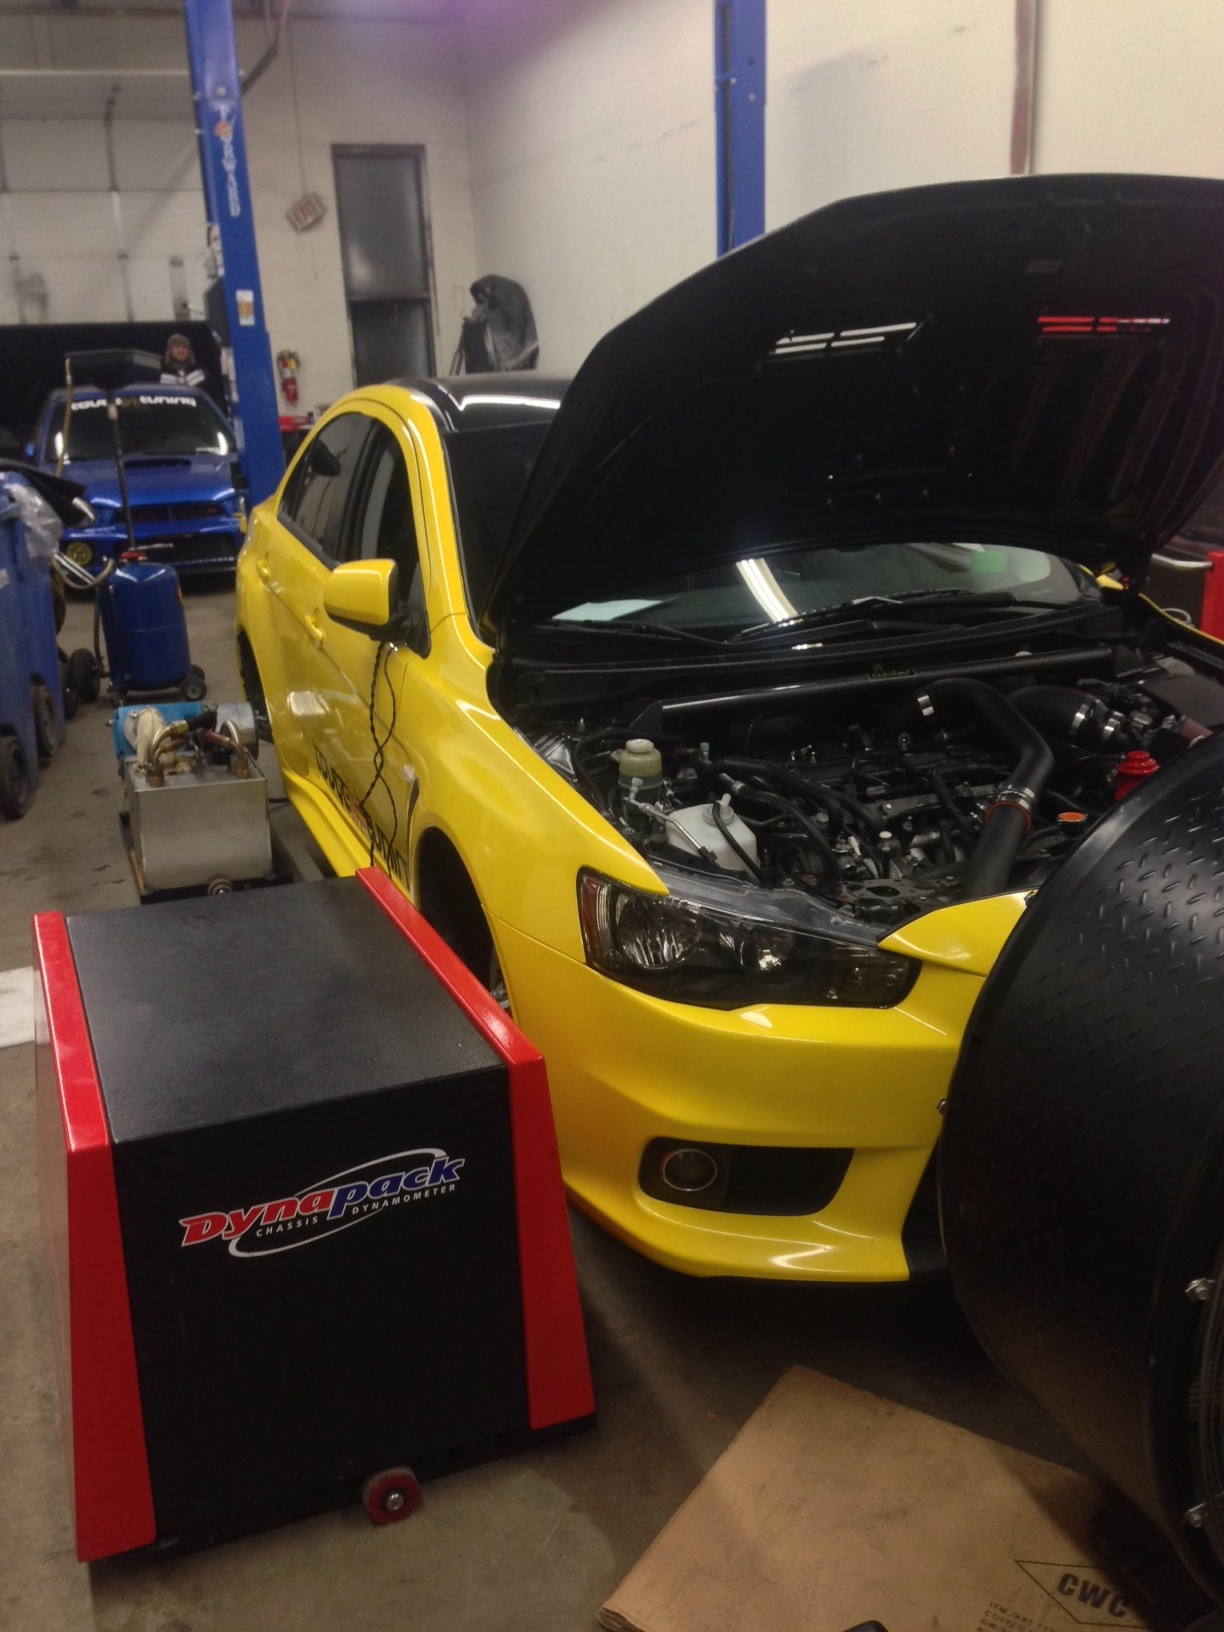 OnPoint's First AWD Car, Usman's 400whp EVO X